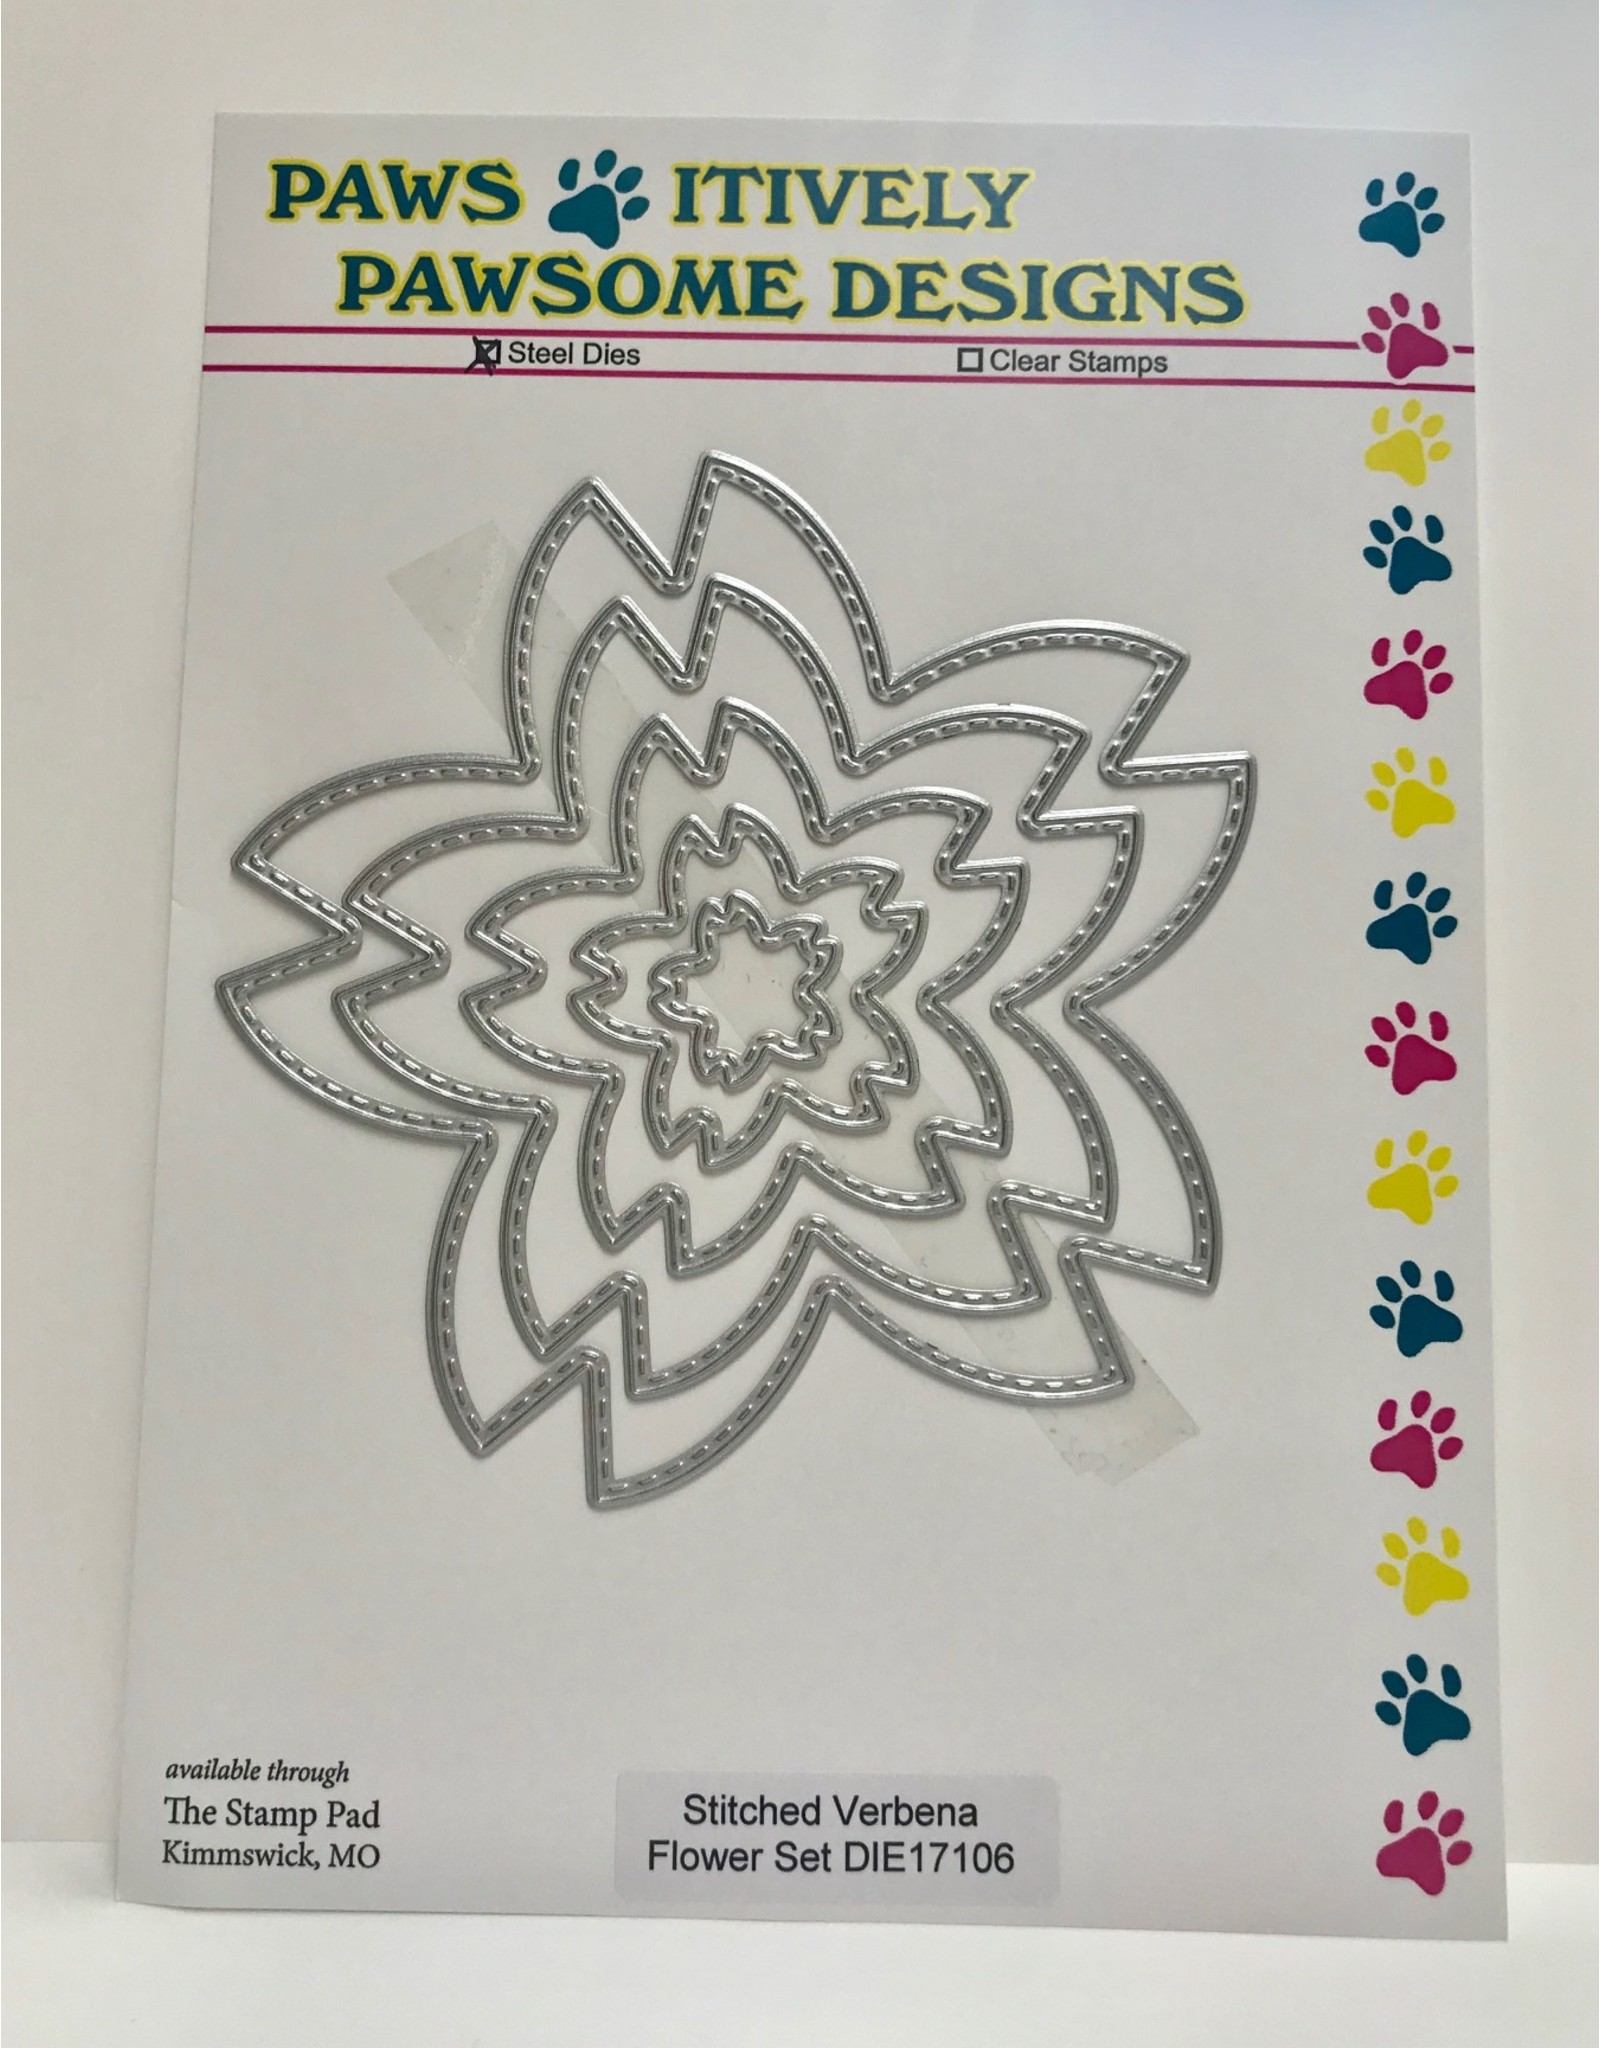 Paws-Itively Pawsome Designs Stitched Verbena Flower Set - Die